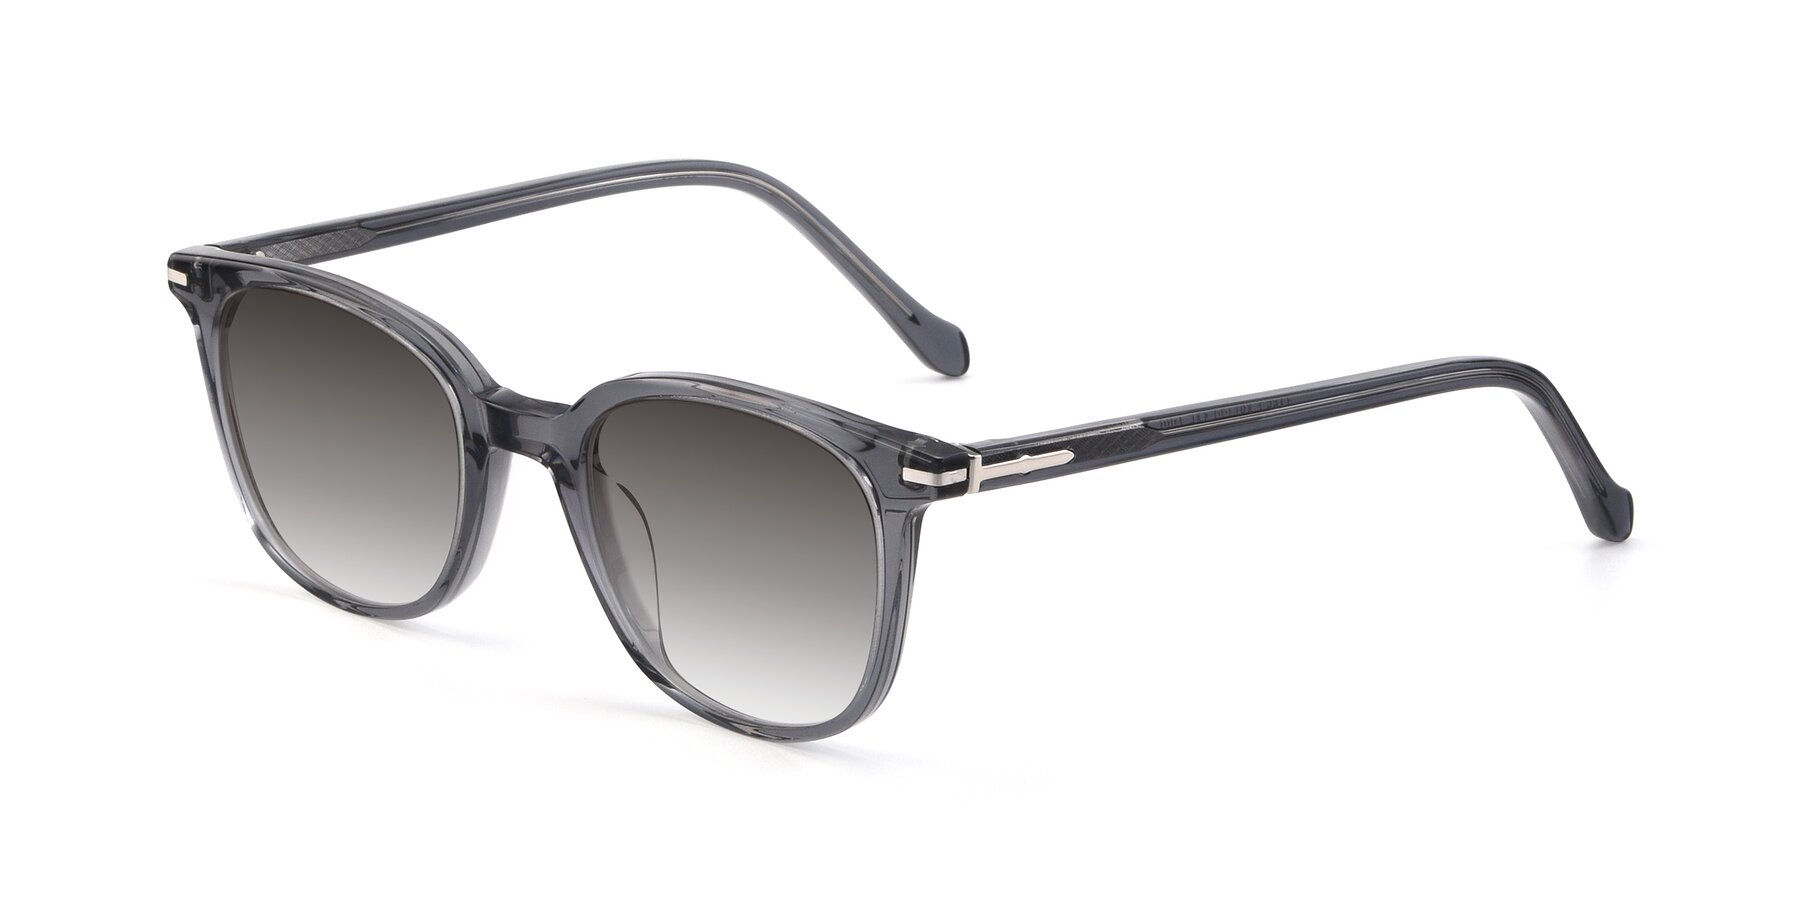 Angle of 17562 in Transparent Grey with Gray Gradient Lenses